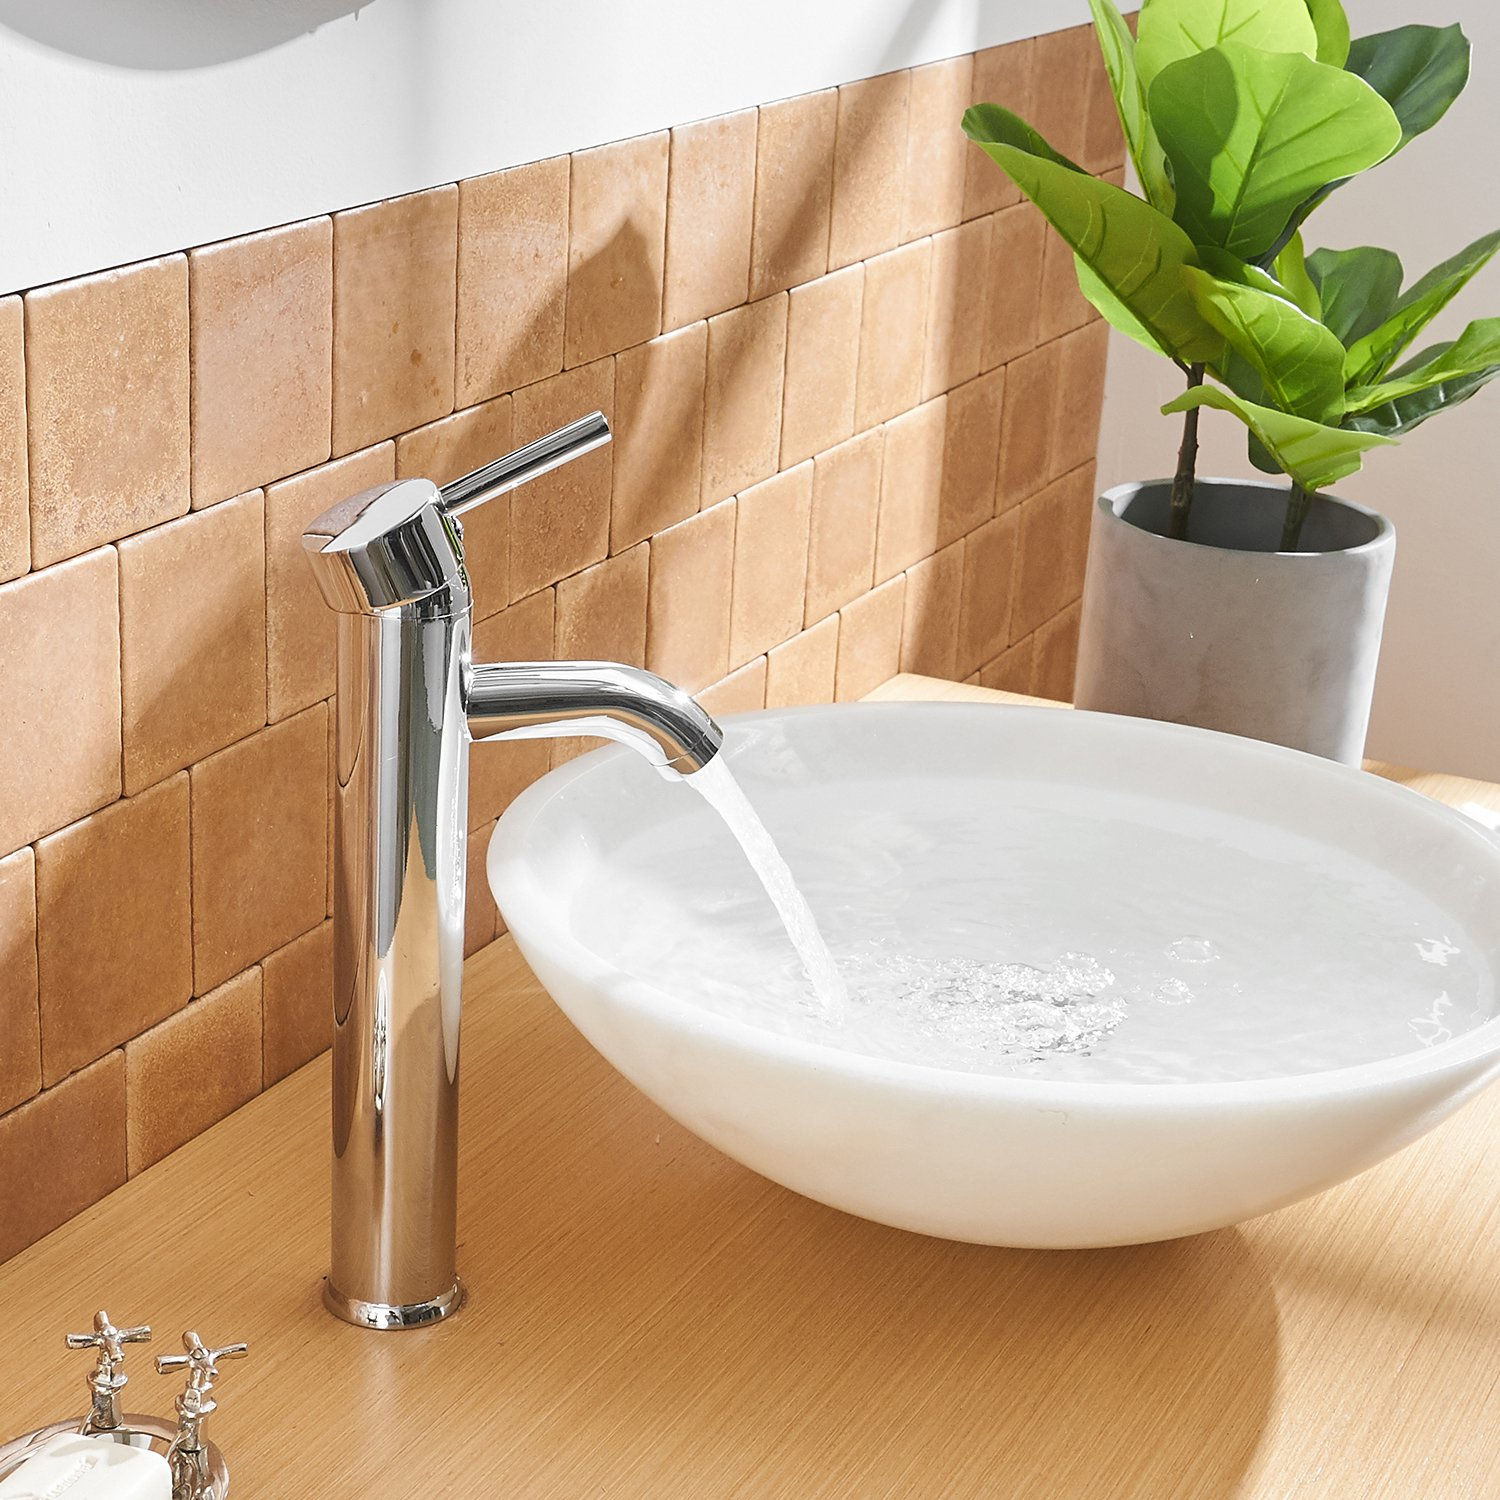 Aquafaucet Single Handle Lever Hole Bathroom Sink Faucet with Deck Plate Escutcheon Stainless Steel Chrome Finish Commercial